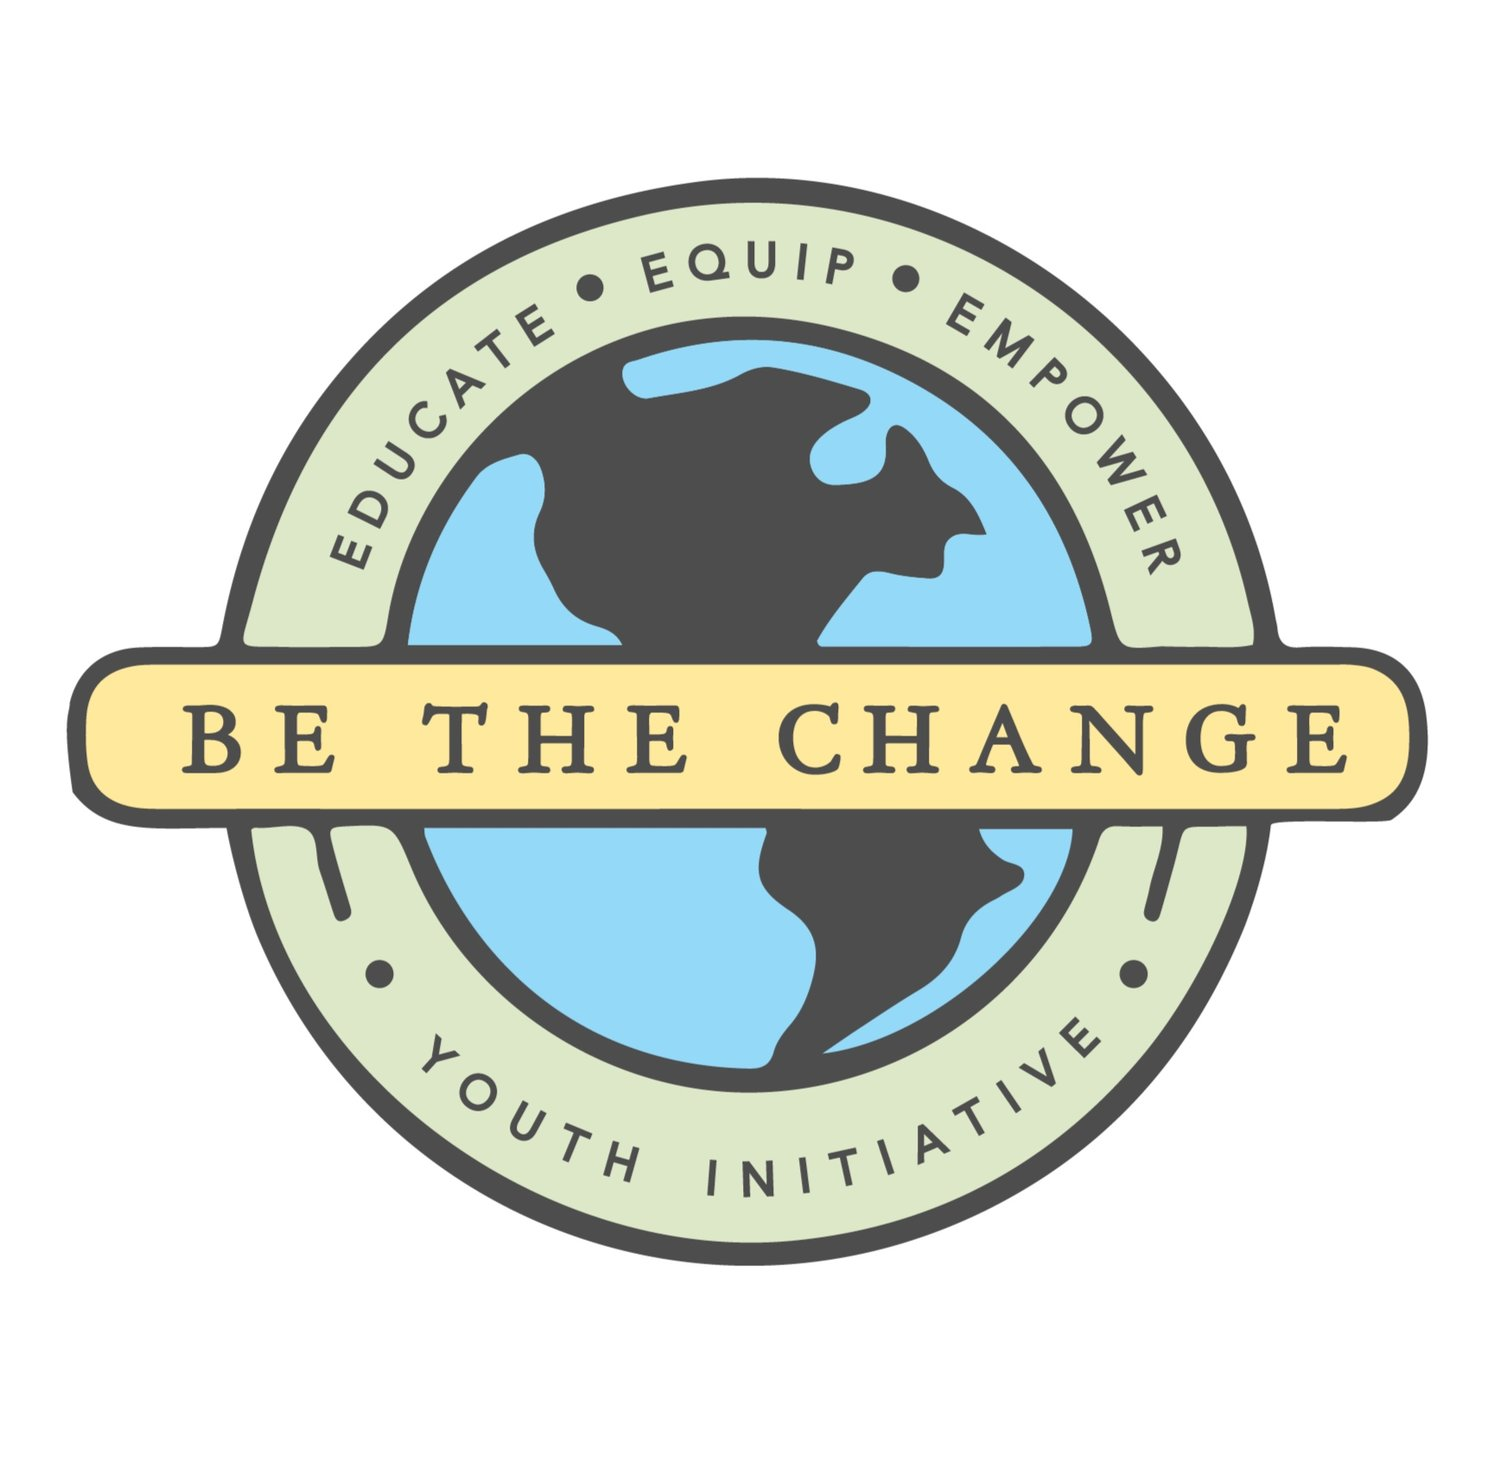 Be The Change Youth Initiative